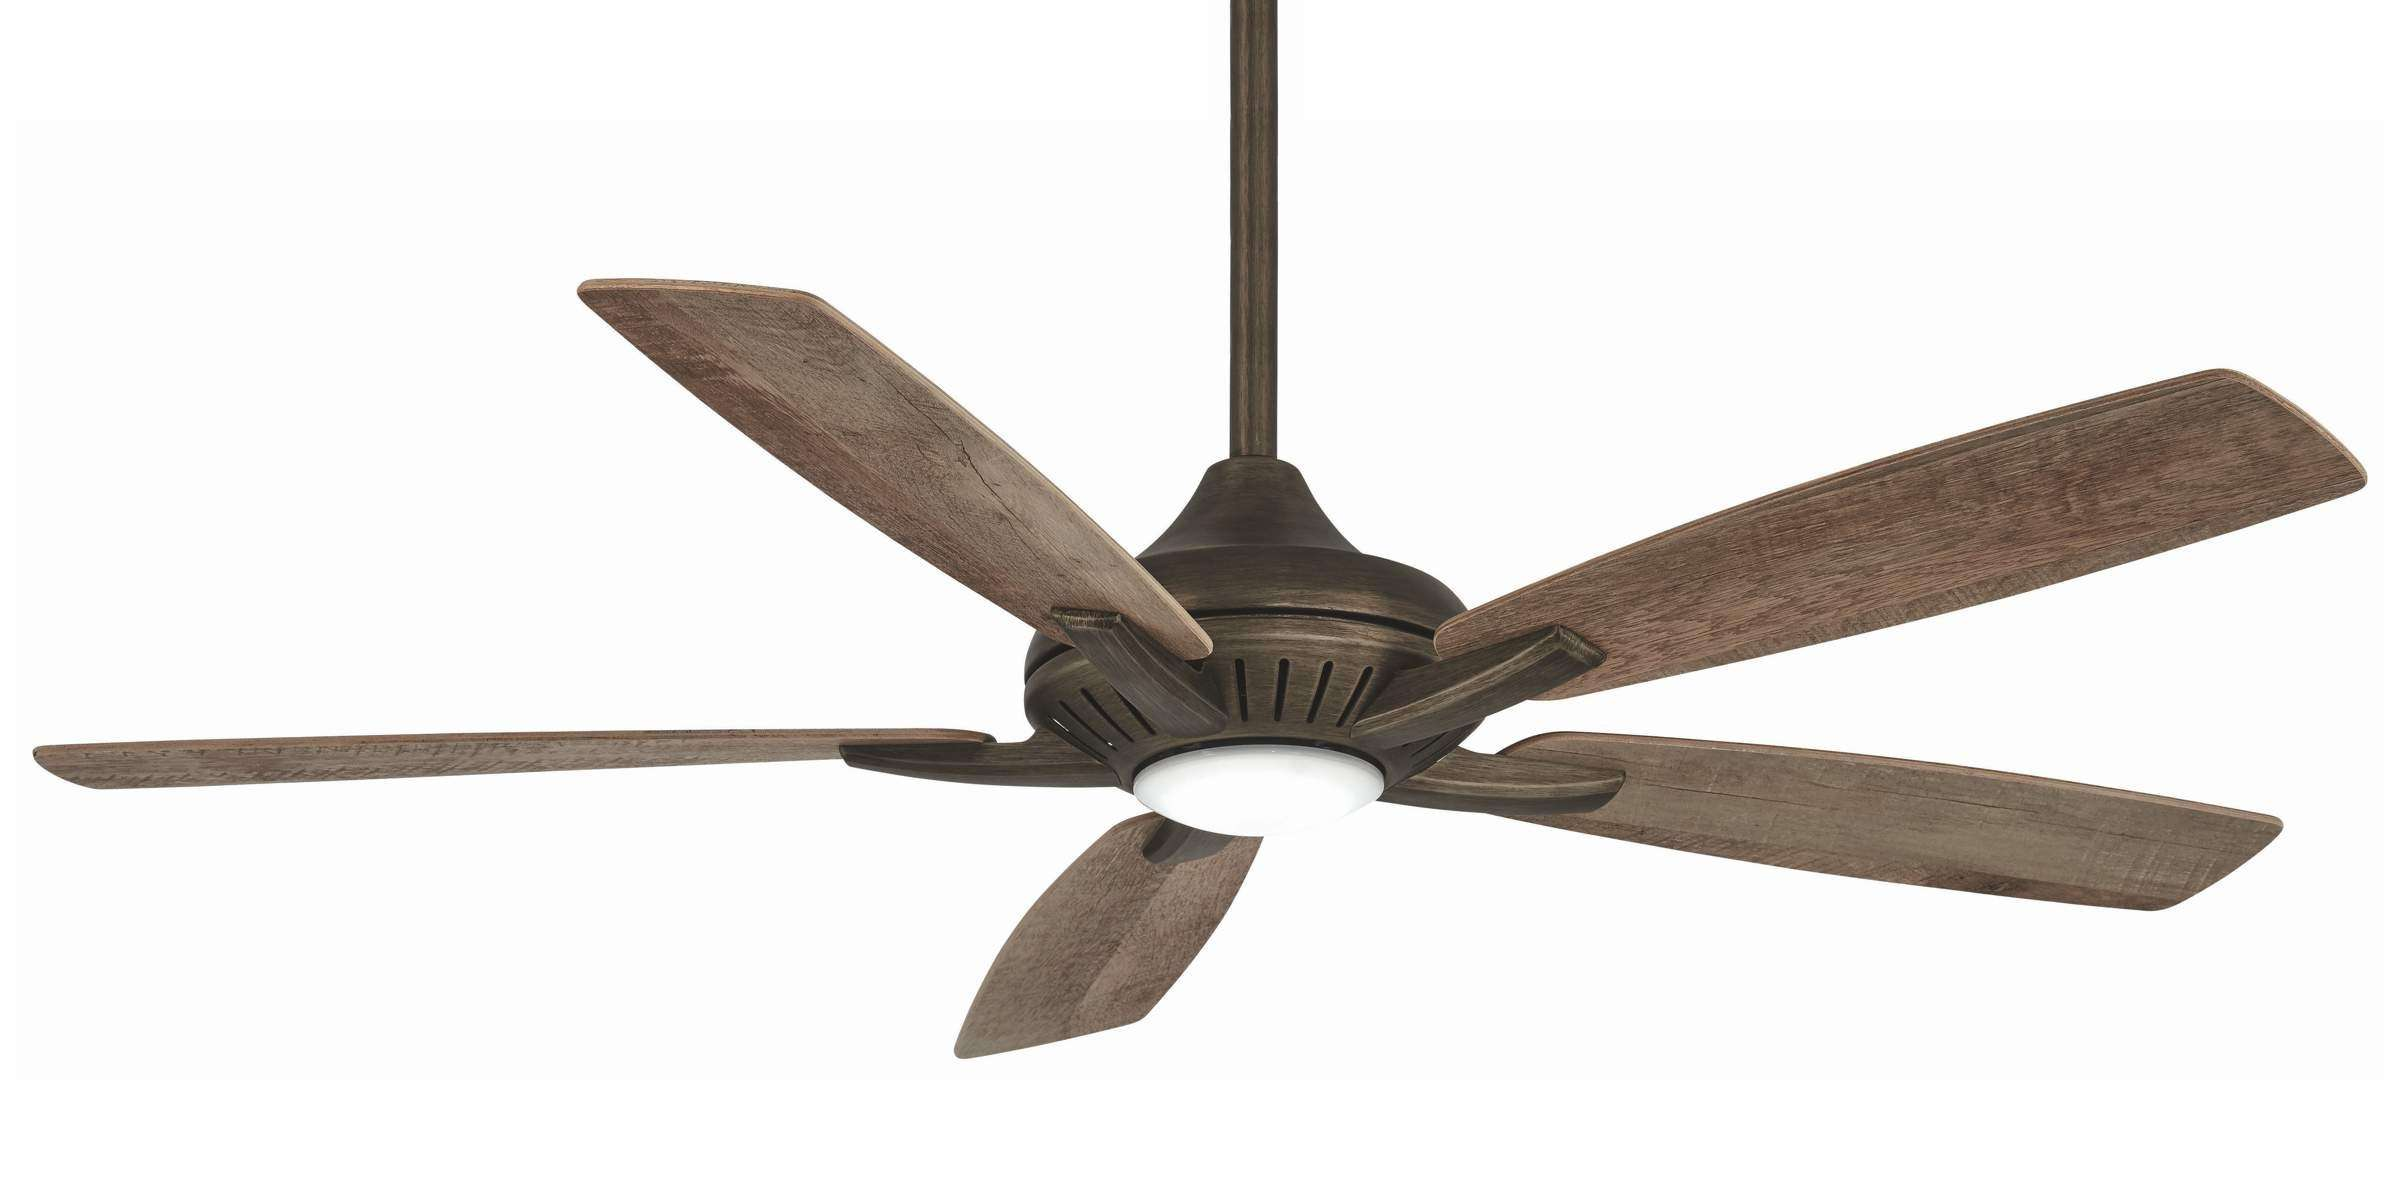 Minka Aire Dyno Ceiling Fan Model MF-F1000-HBZ in Heirloom Bronze